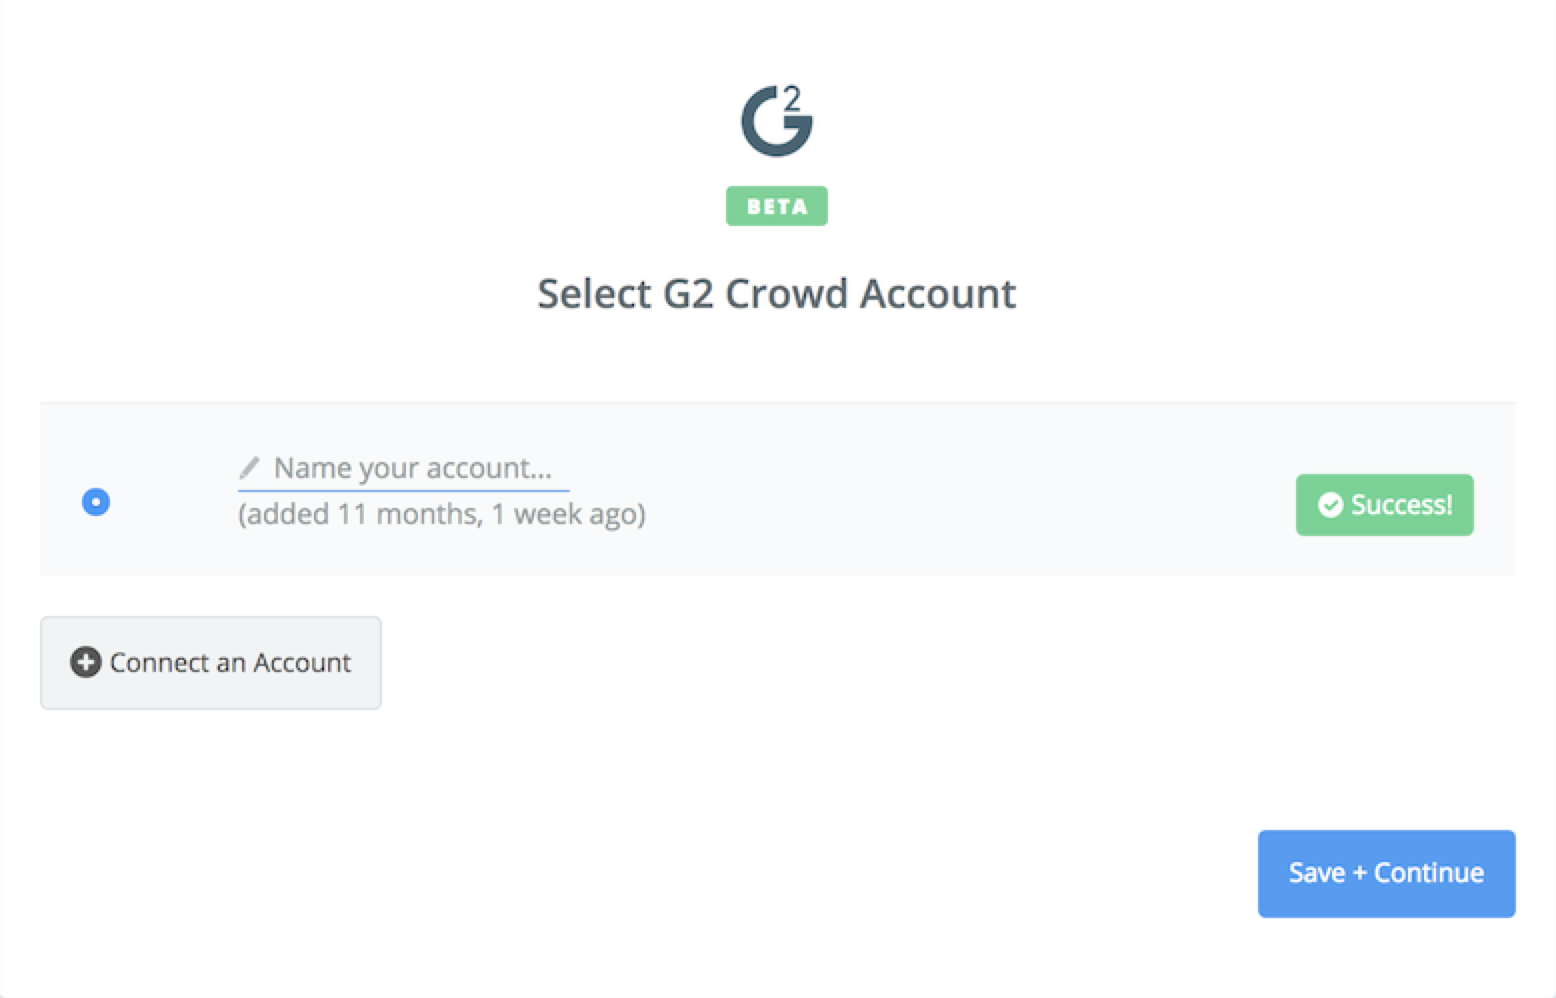 G2 Crowd connection successful